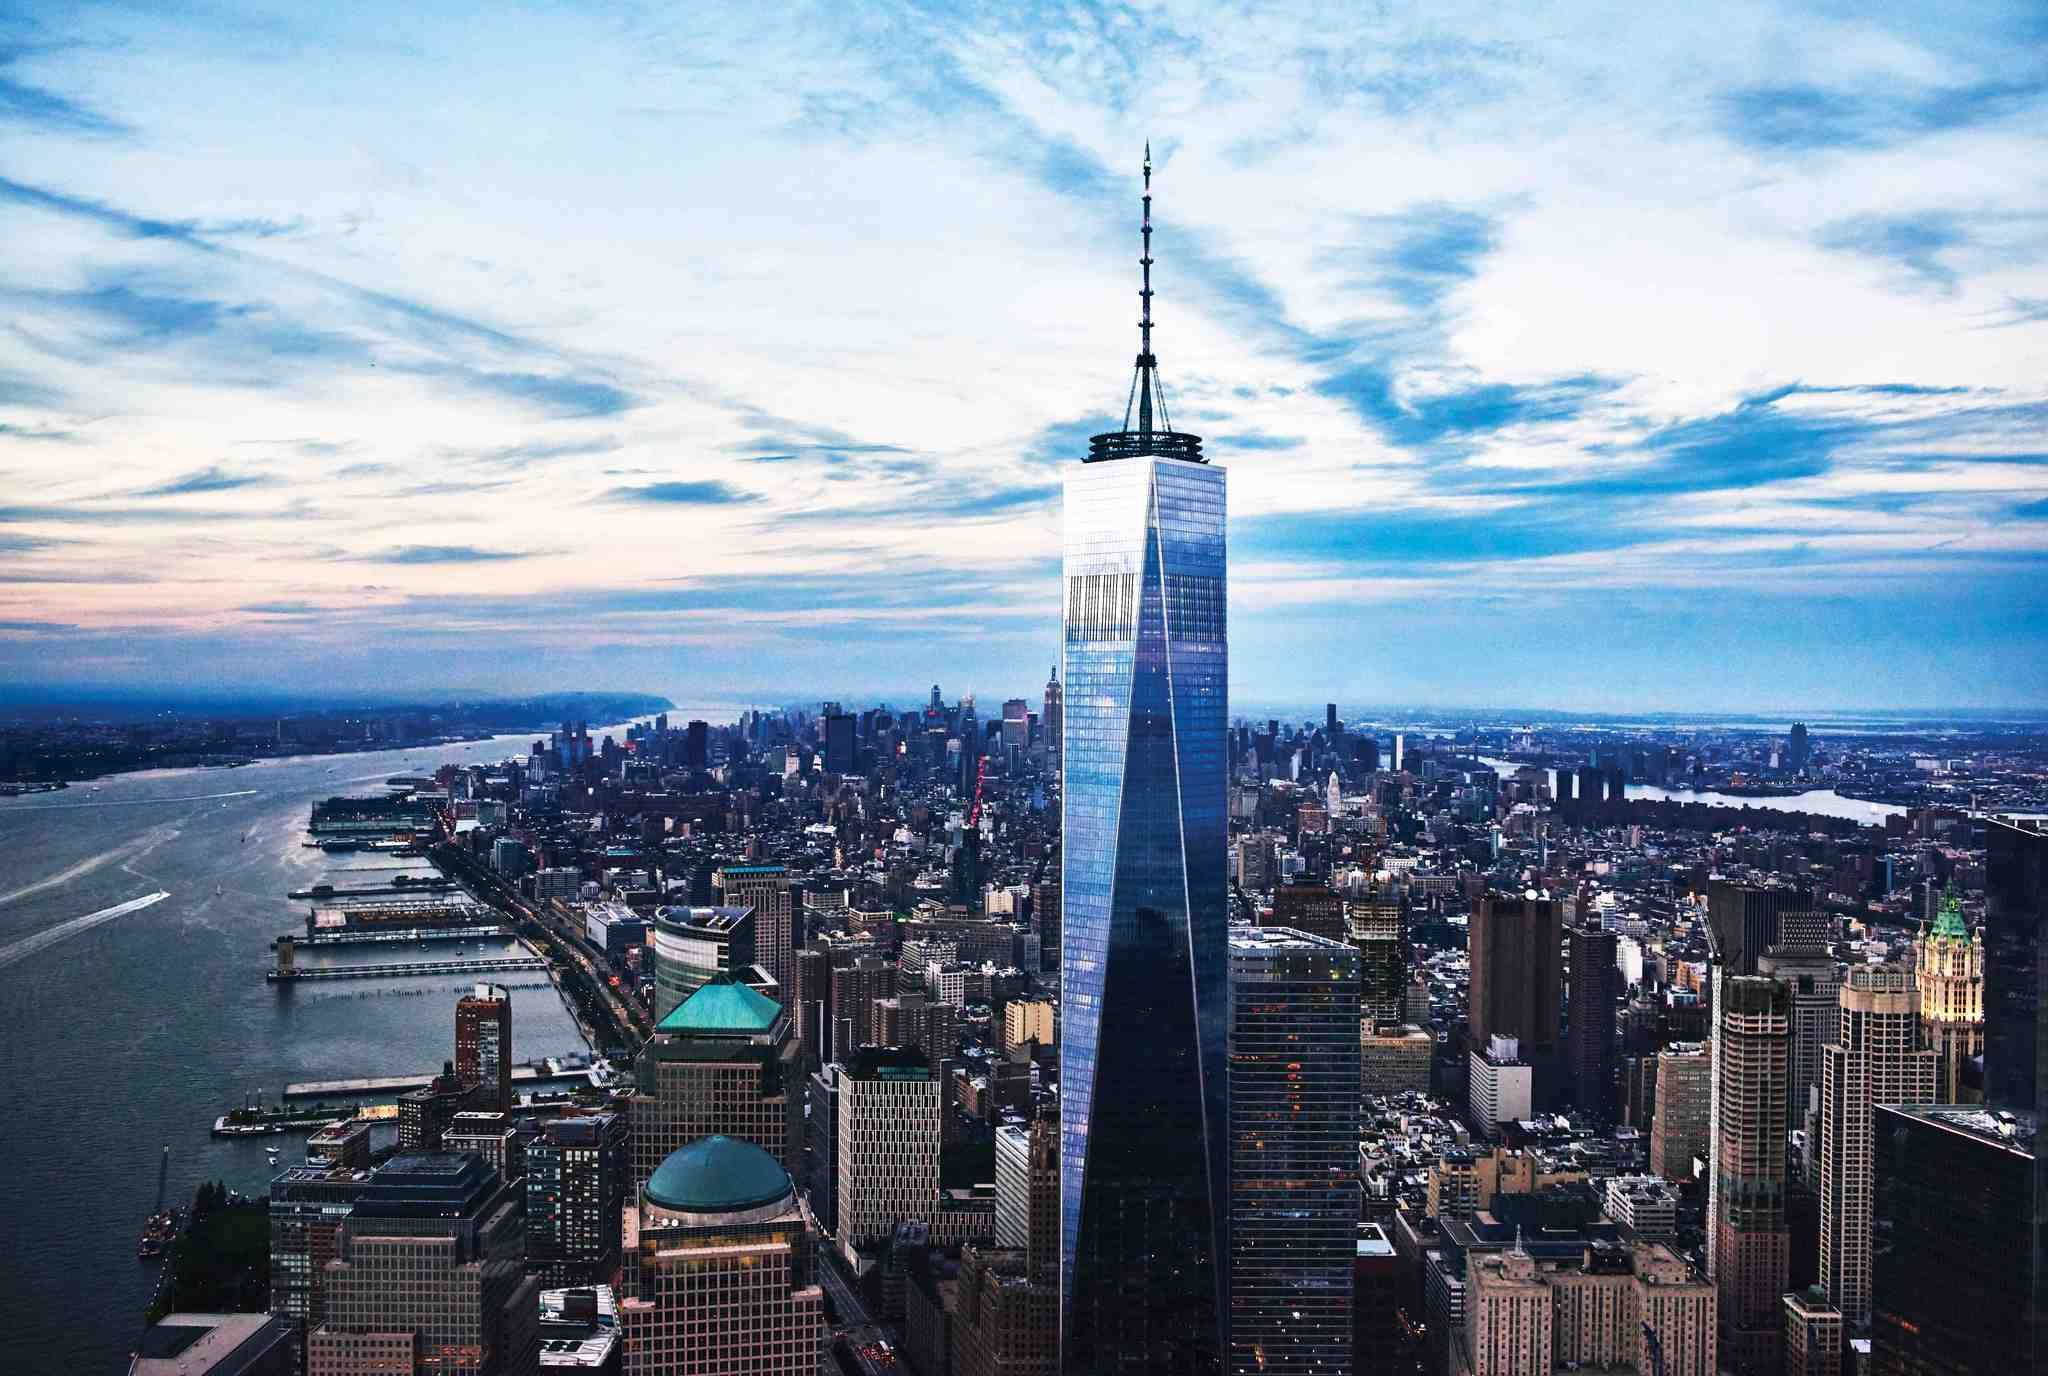 new york city one world trade center - Google Search